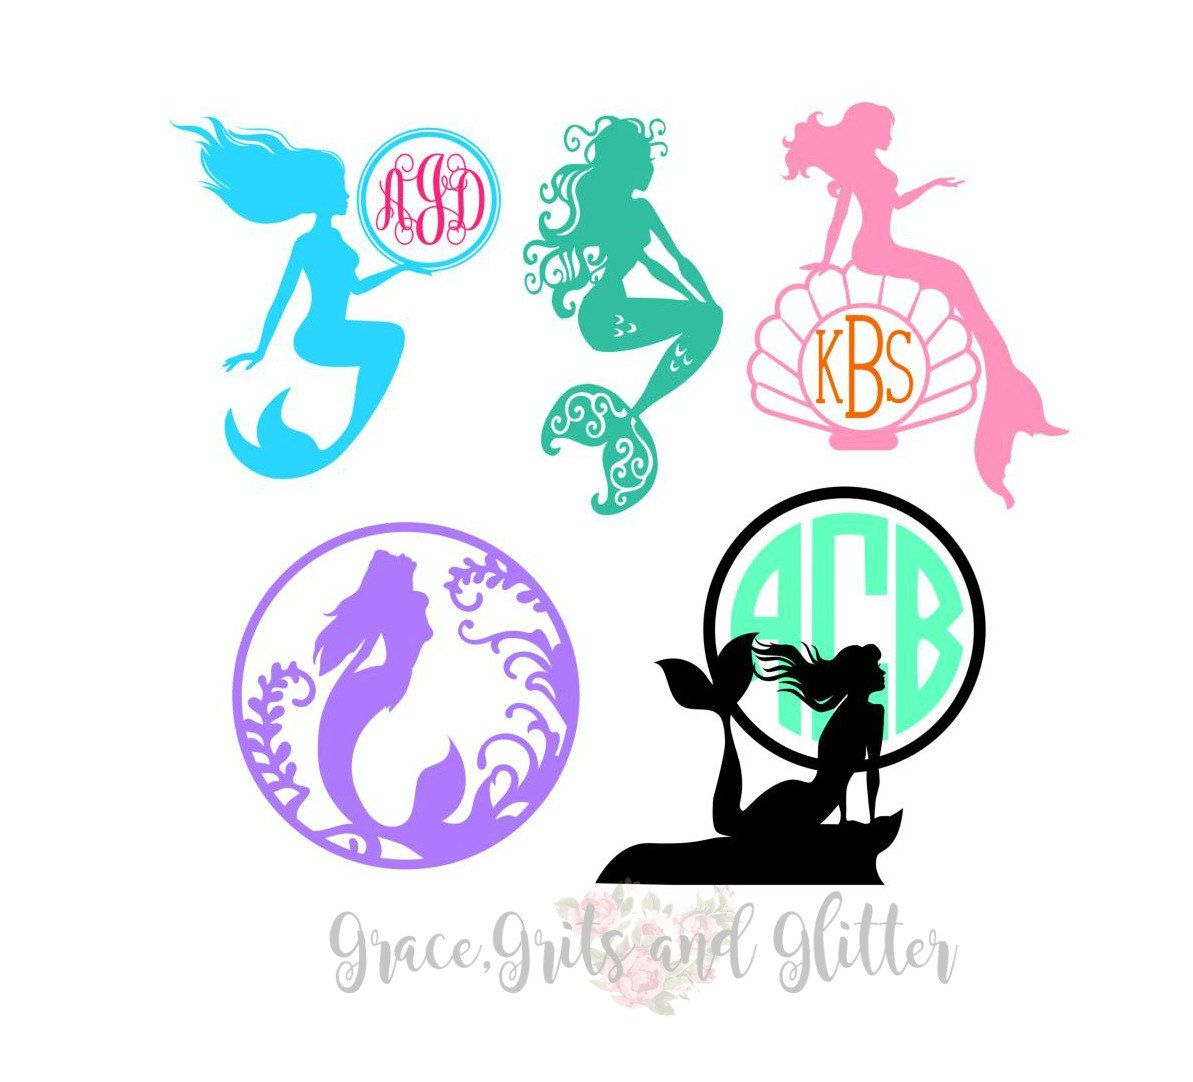 Mermaid Monograms Monograms Mermaid Mermaid Lagoon Lets - Mermaid custom vinyl decals for car